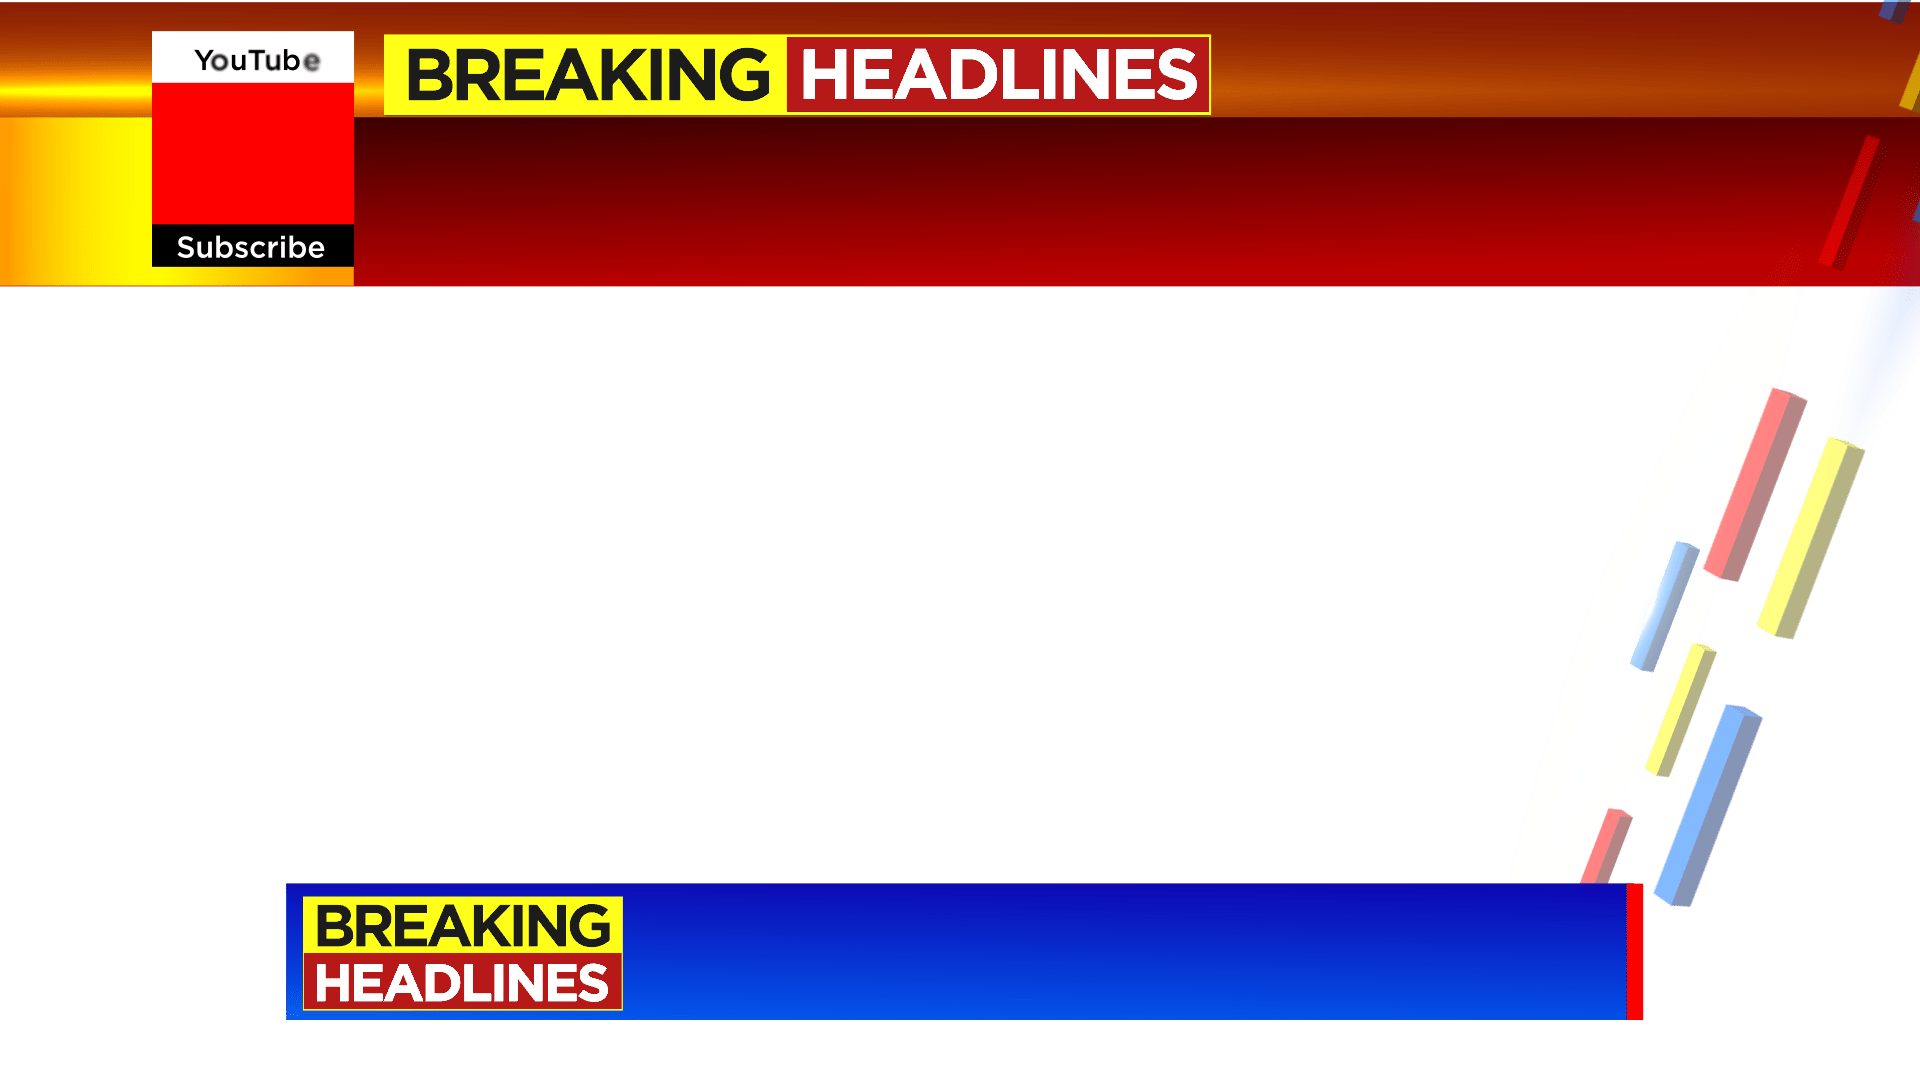 free news studio 3d design and breaking news text download